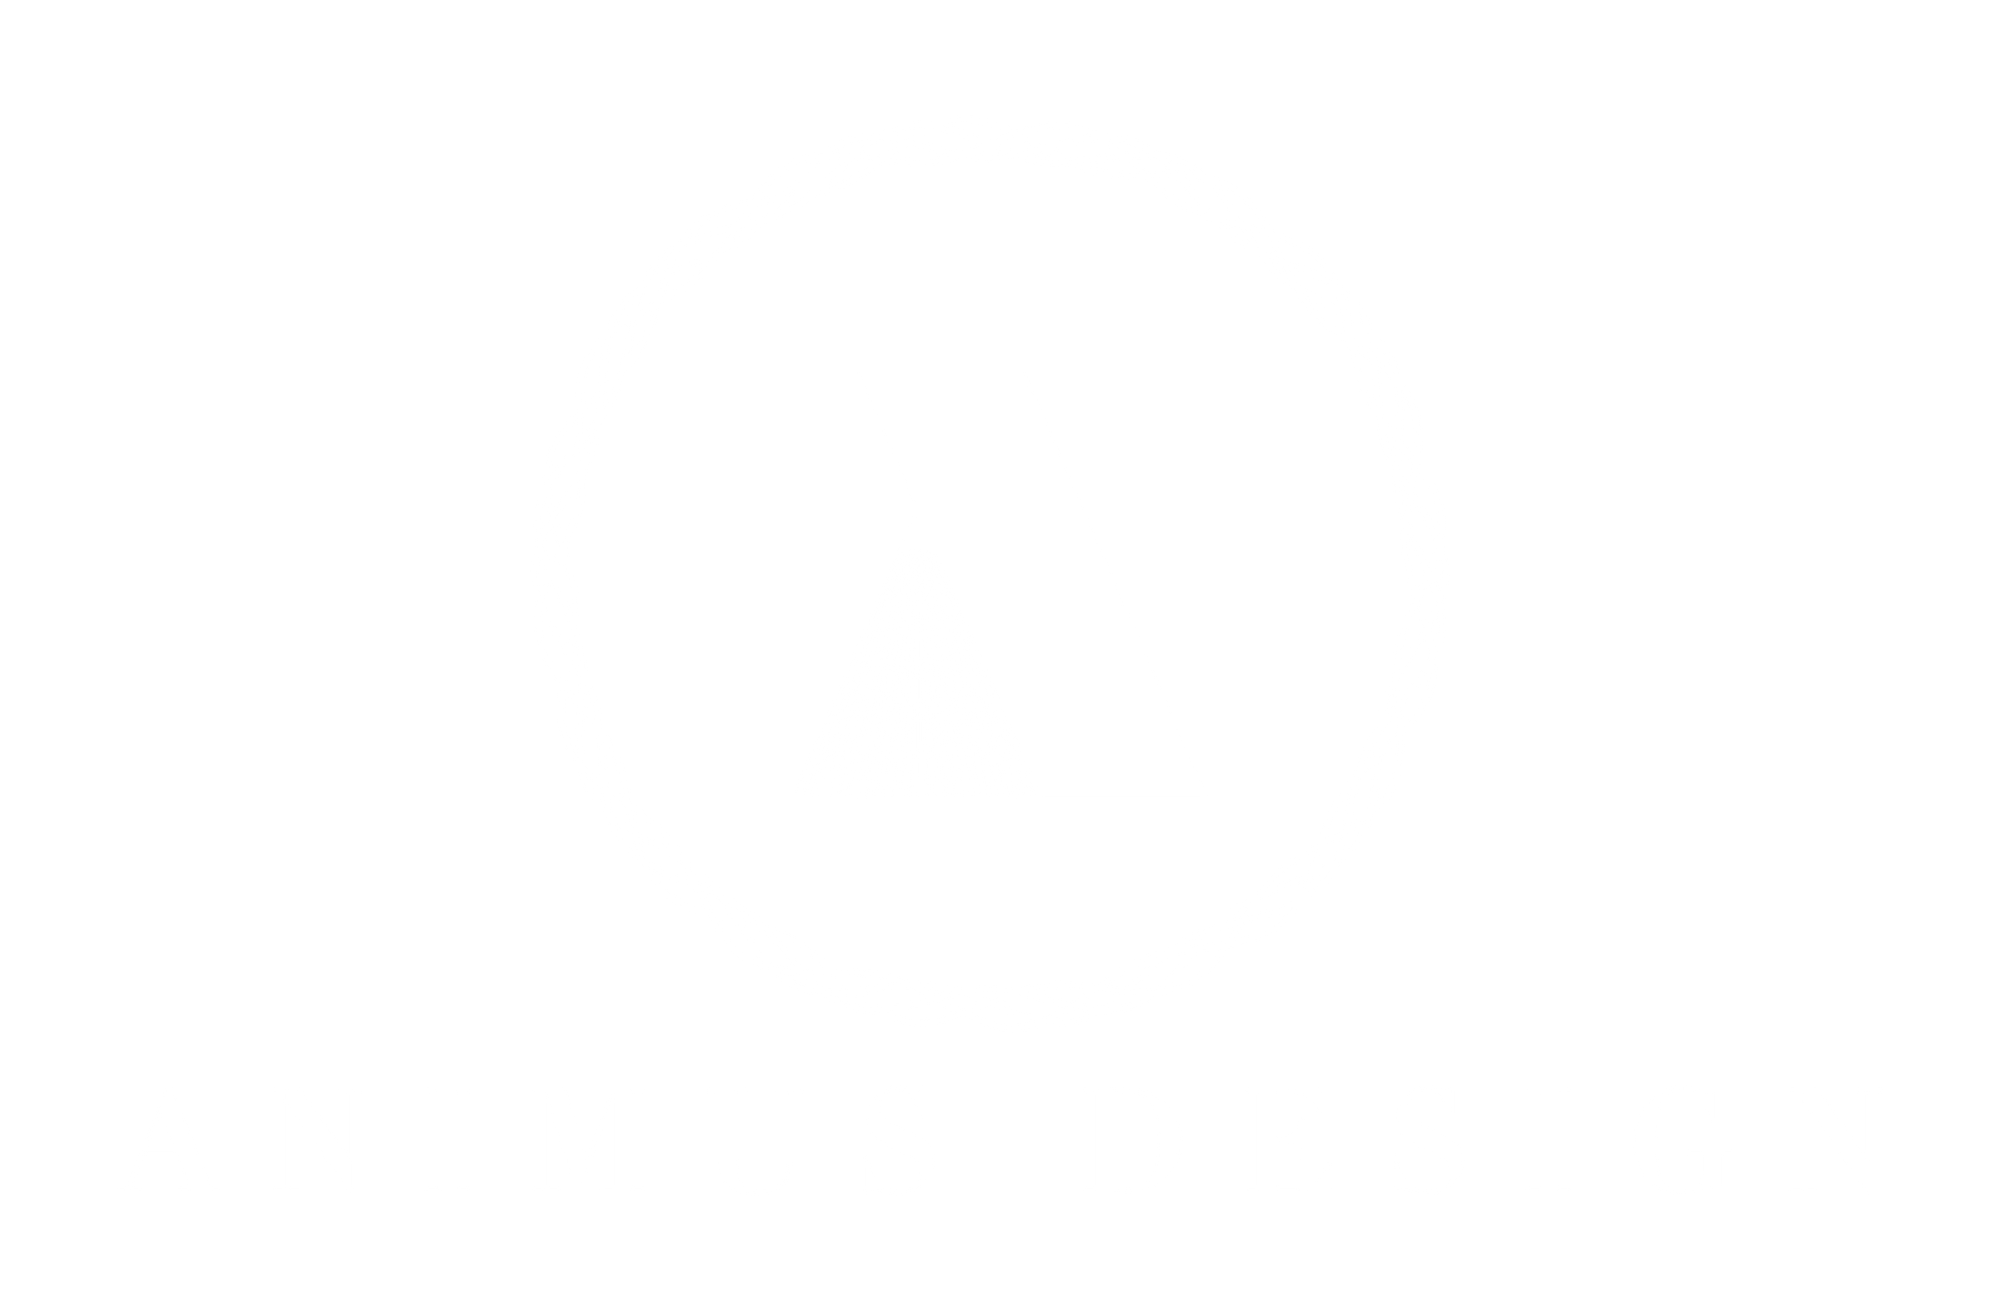 Animus Design